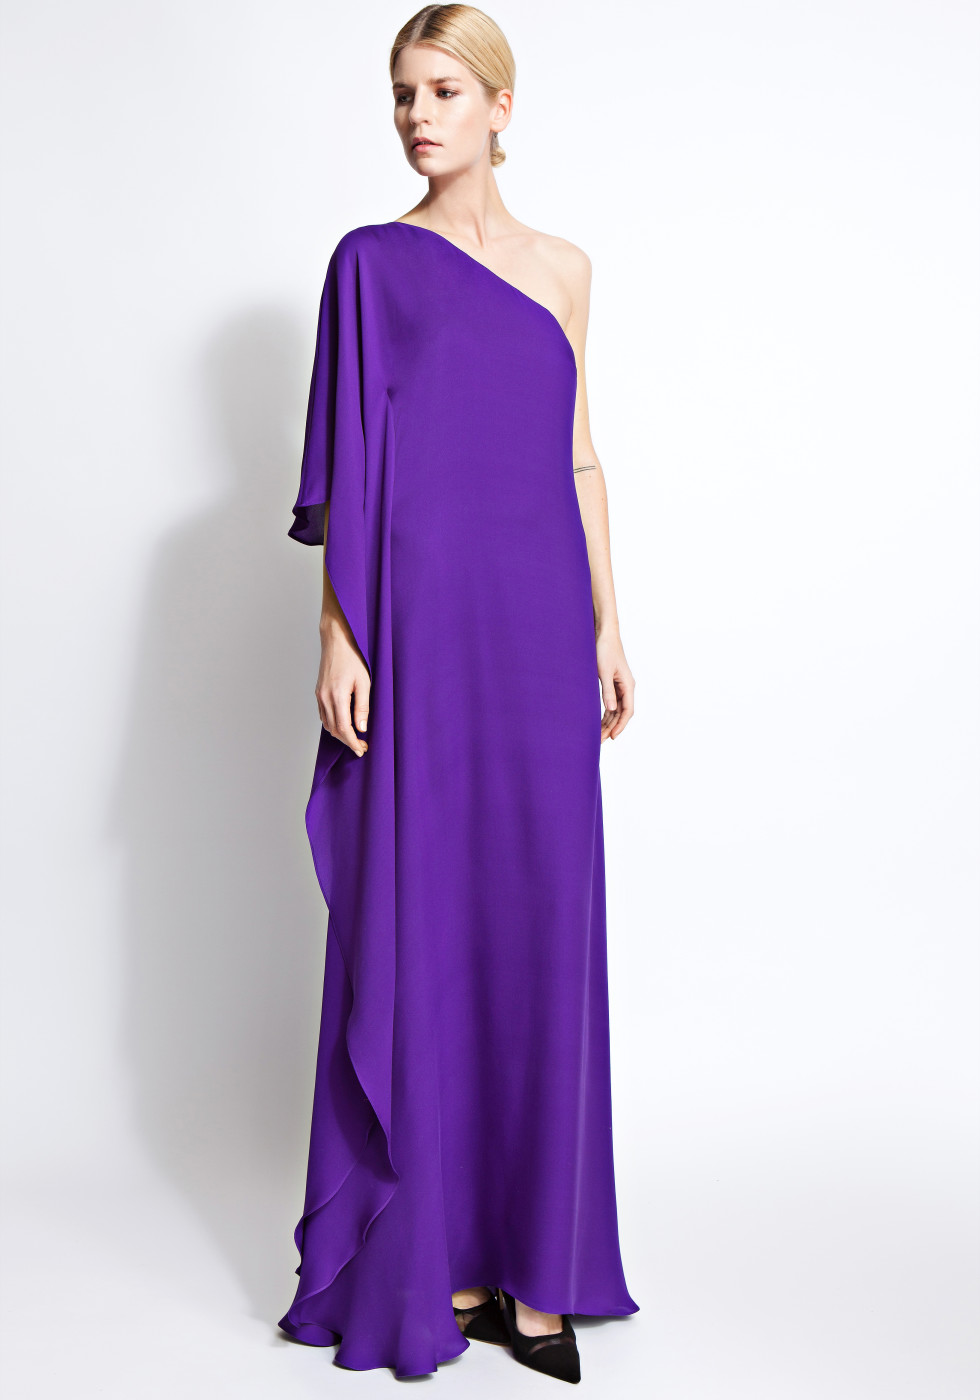 Cara one-shoulder chiffon gown